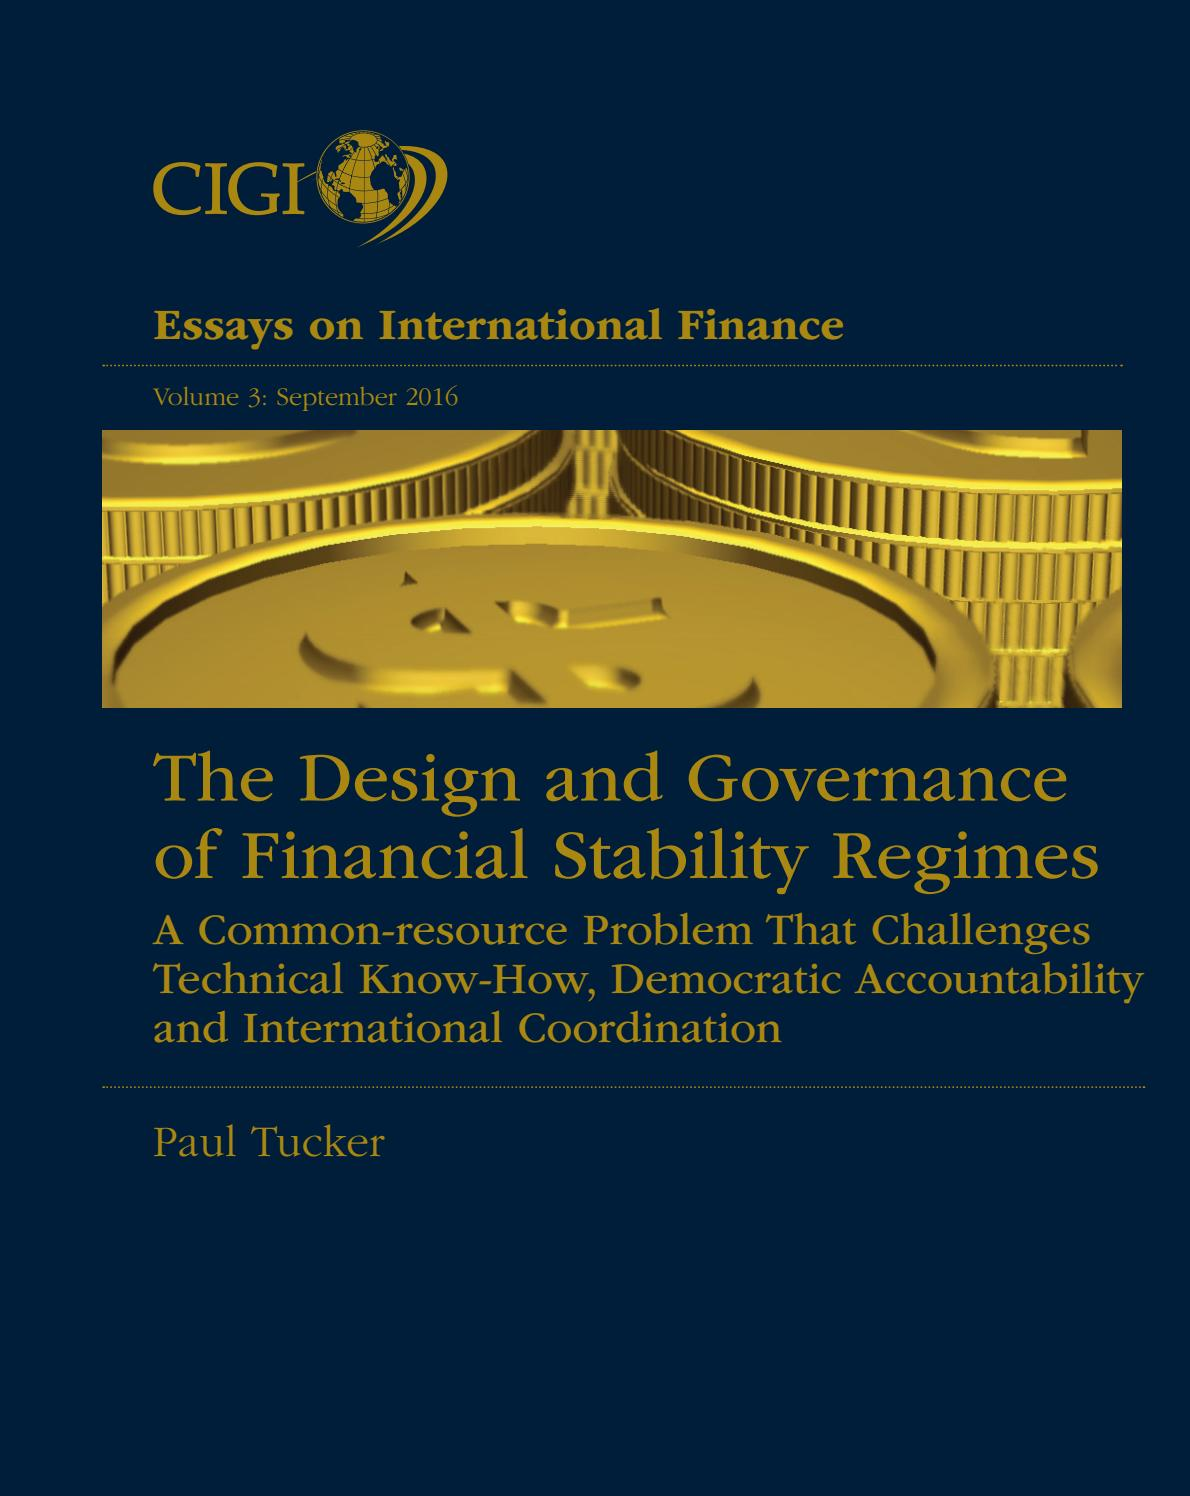 the design and governance of financial stability regimes a financial essay vol 3 web 6 months ago cigi